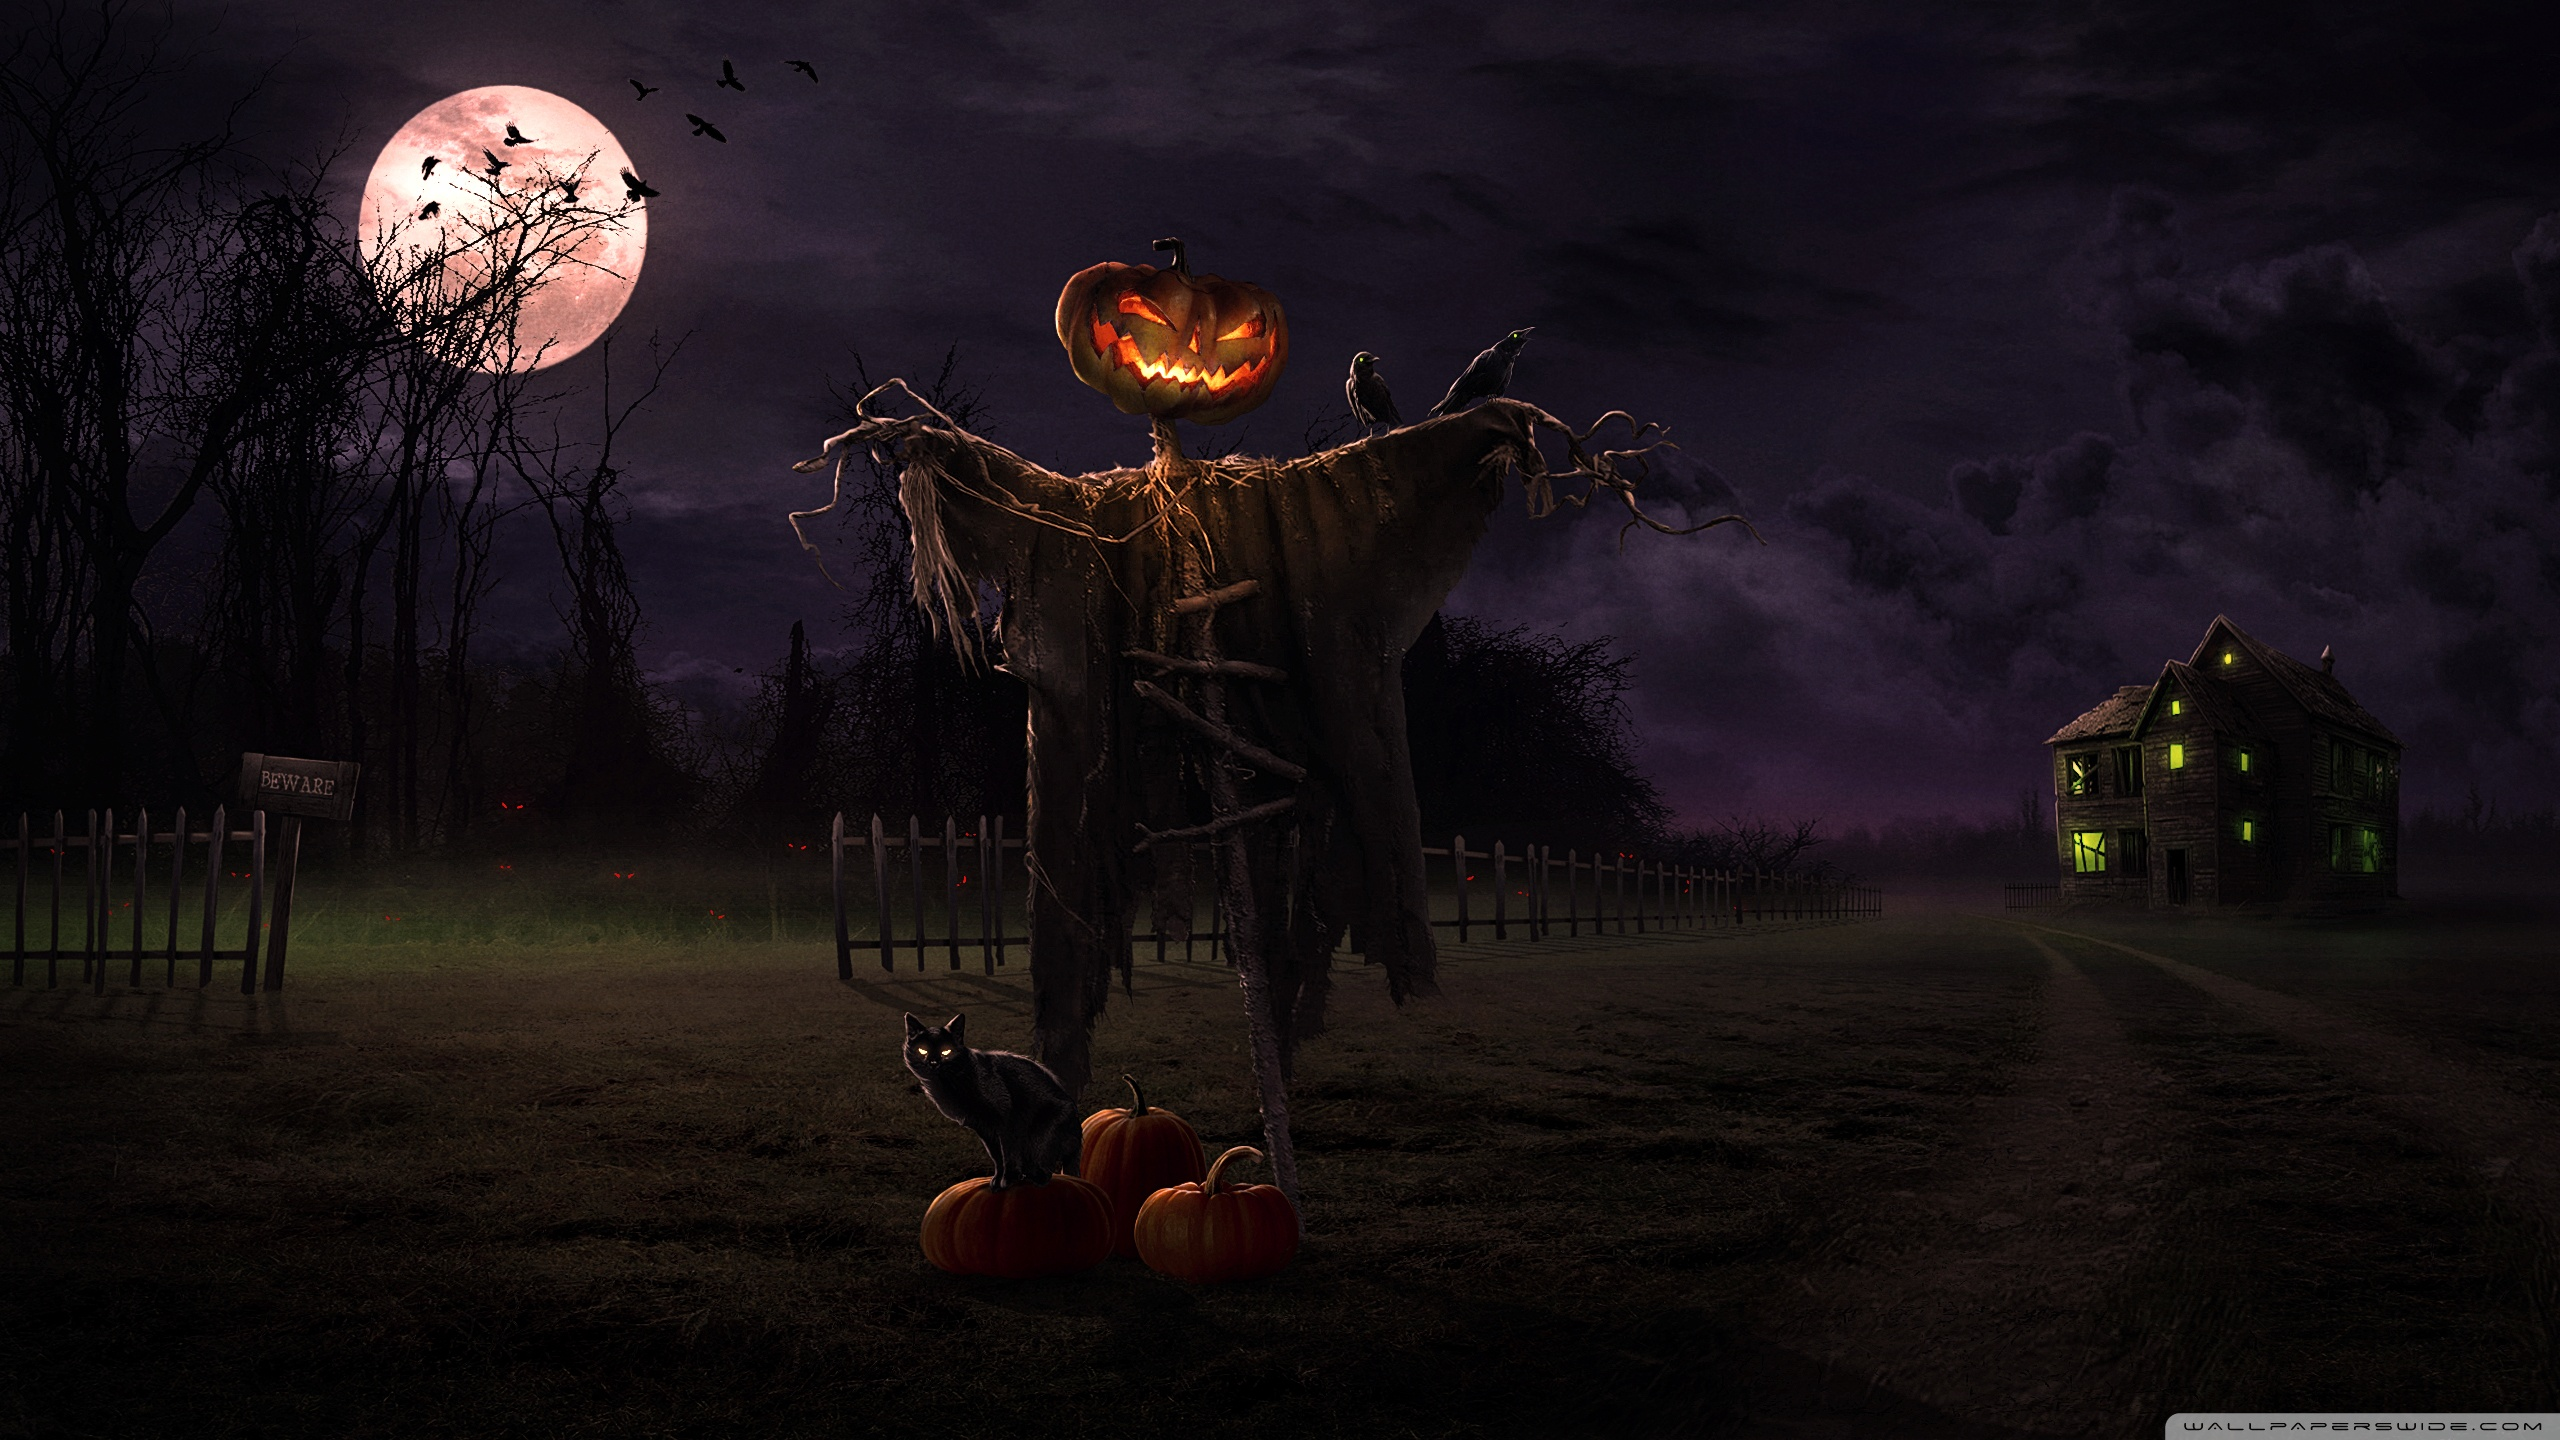 WallpapersWide com | Halloween HD Desktop Wallpapers for